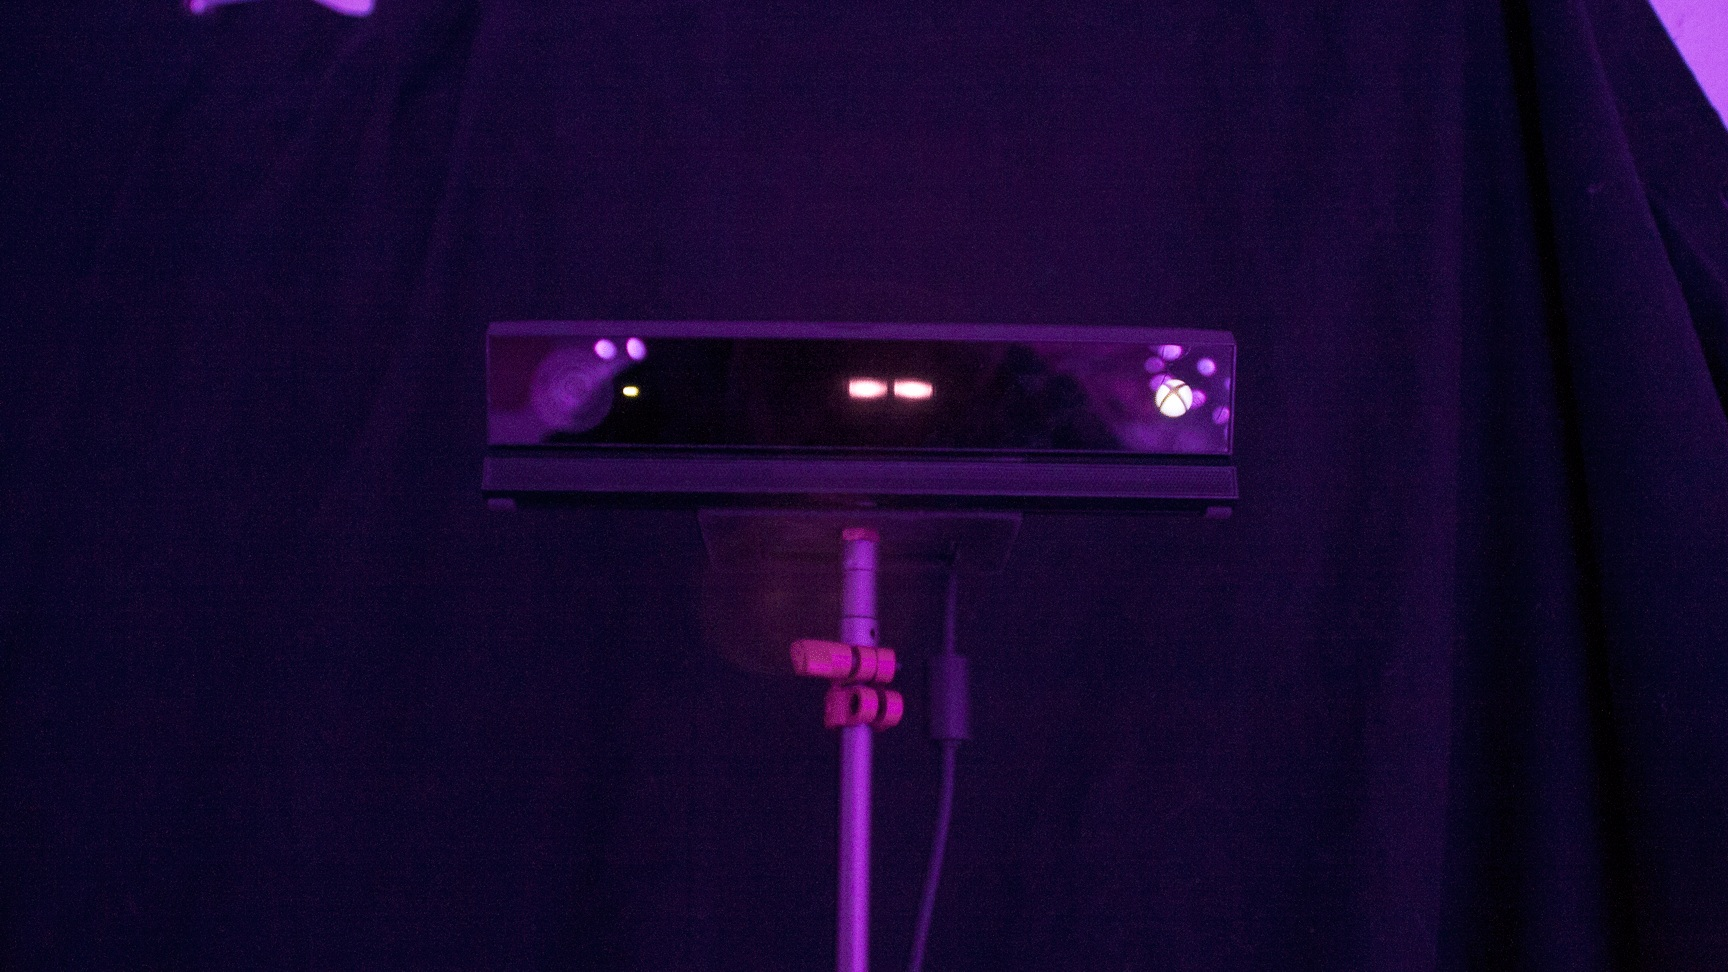 Data from the kinect is analyzed by a neural network, which gives a 'dance amount' for the clubber.